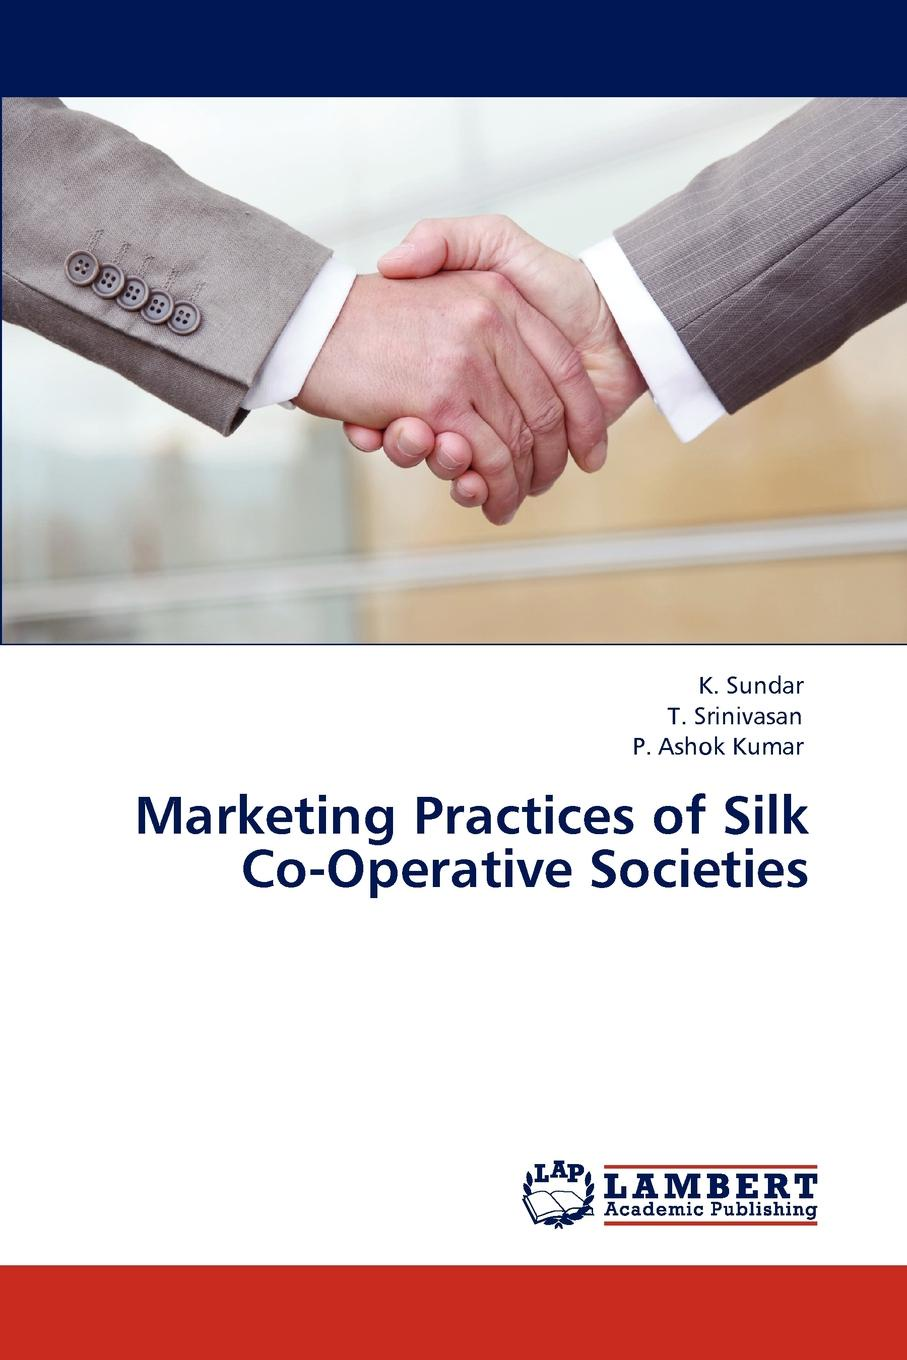 K. Sundar, T. Srinivasan, P. Ashok Kumar Marketing Practices of Silk Co-Operative Societies недорго, оригинальная цена